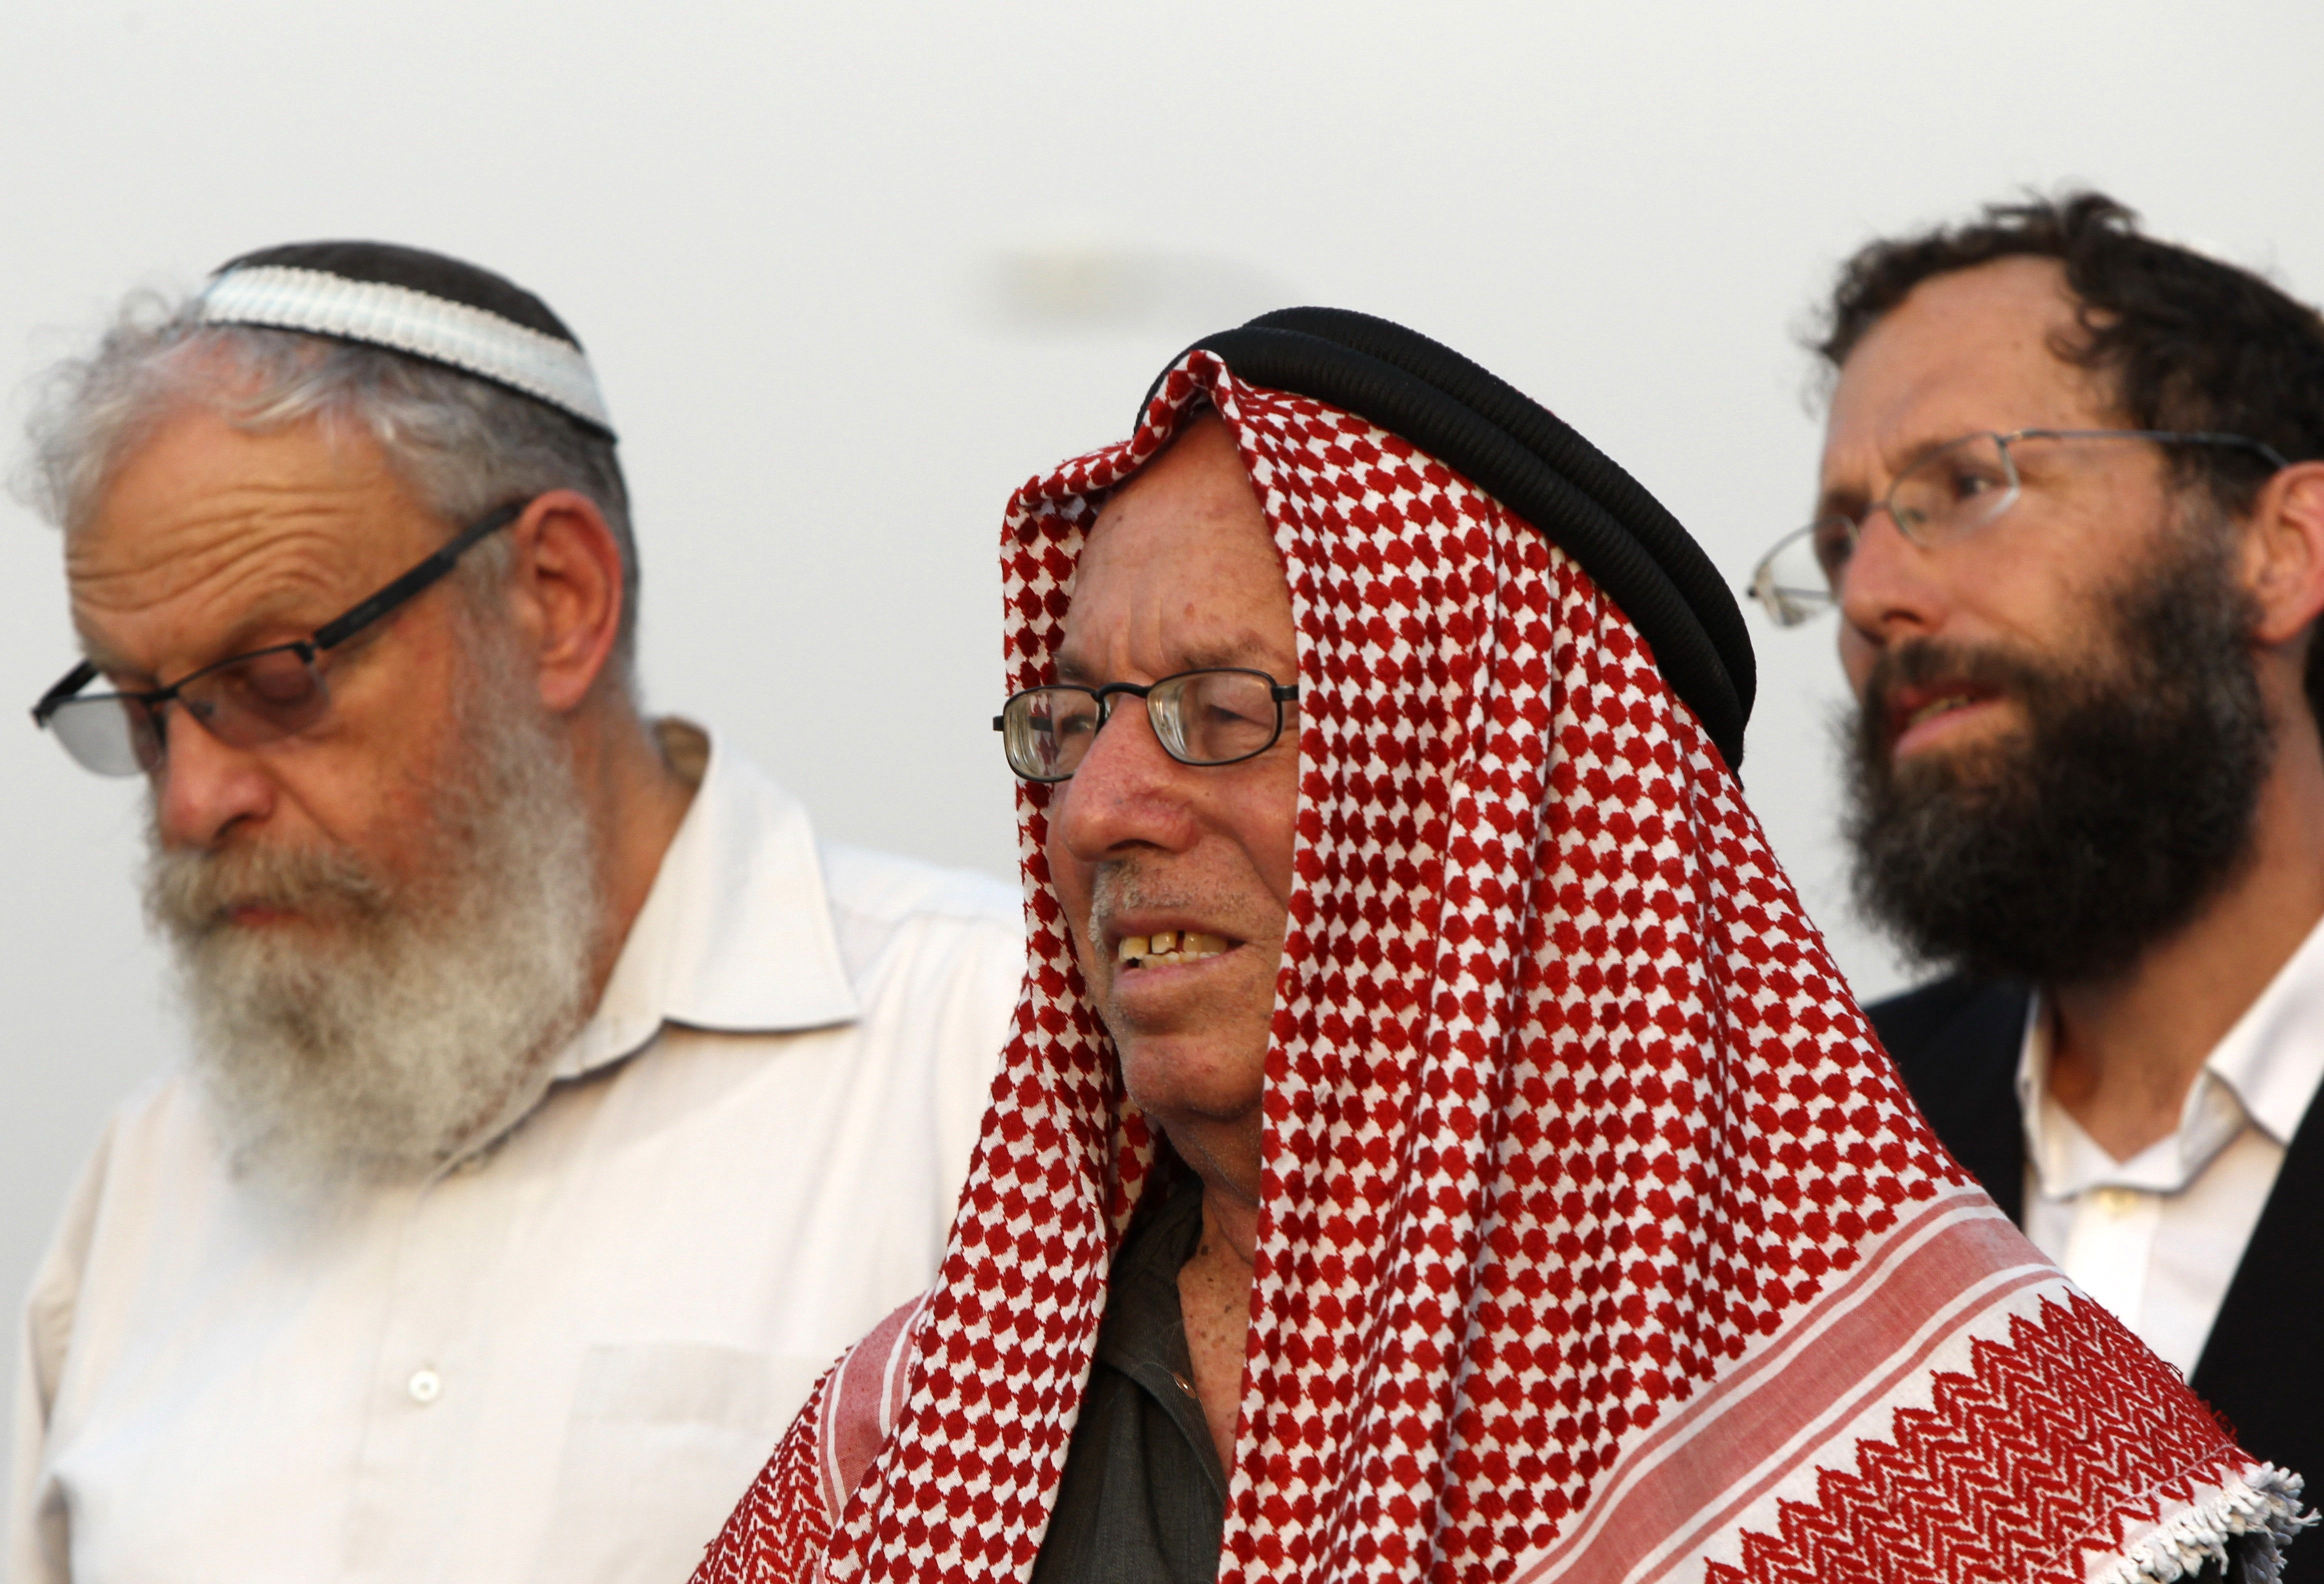 Palestinian peace activist Haj Ibrahim Abu el-Hawa and Jewish settlers attend a rally called for by the Israeli Tag Meir (Light Tag) organization, which denounces racism and calls for peace between Palestinians and Israeli settlers in the occupied Palestinian territories.